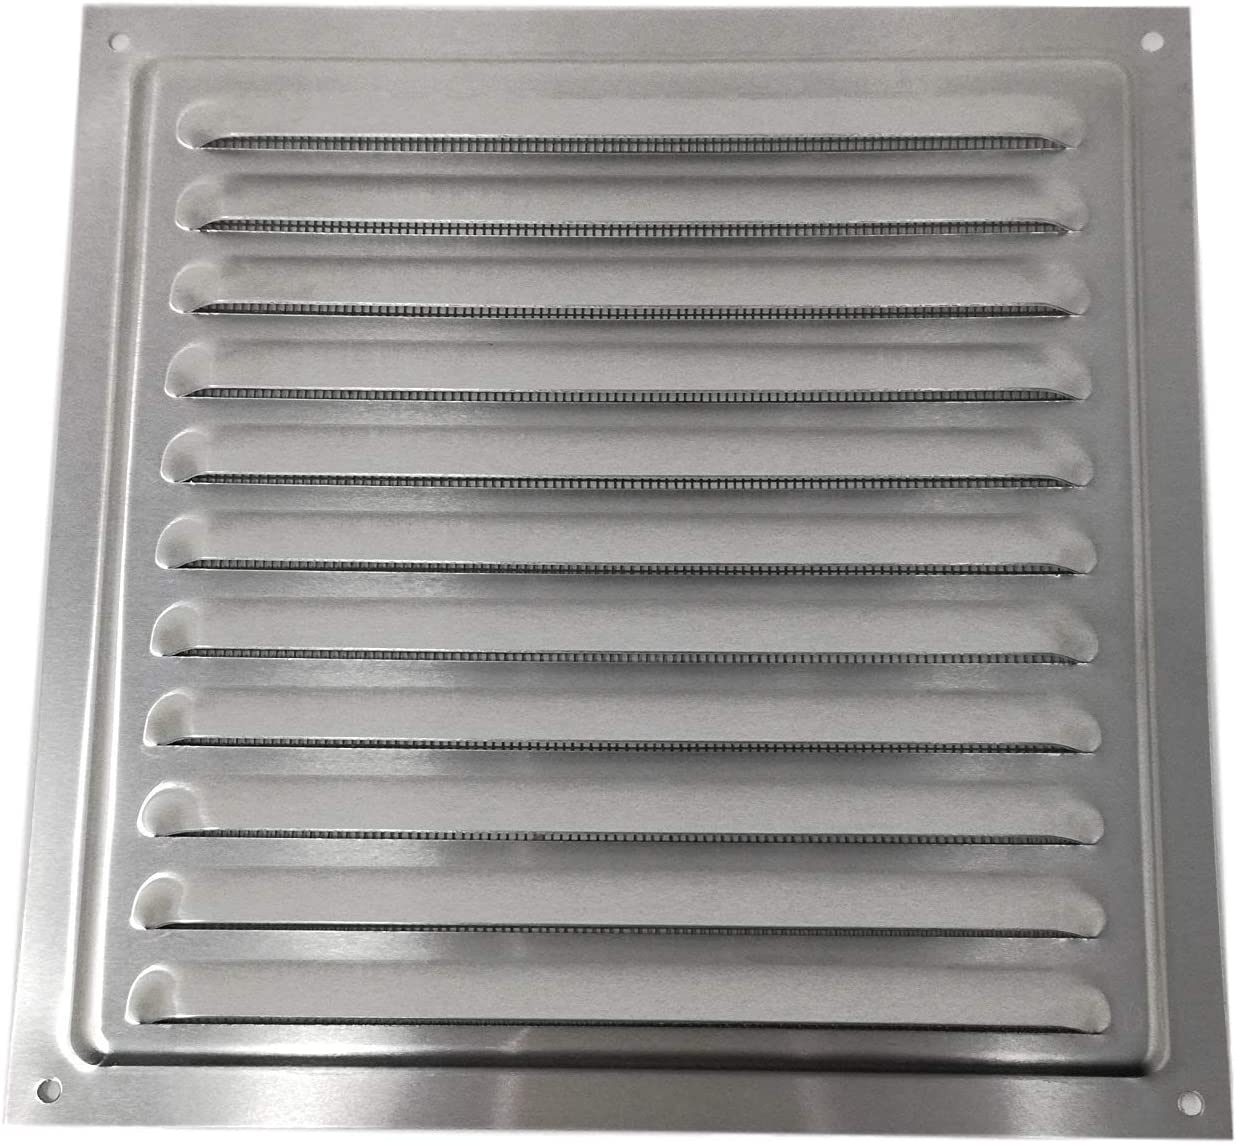 Metal Bug Net 300 x 300 mm Grill Air Vent Aluminium Rust Free with Mosquito